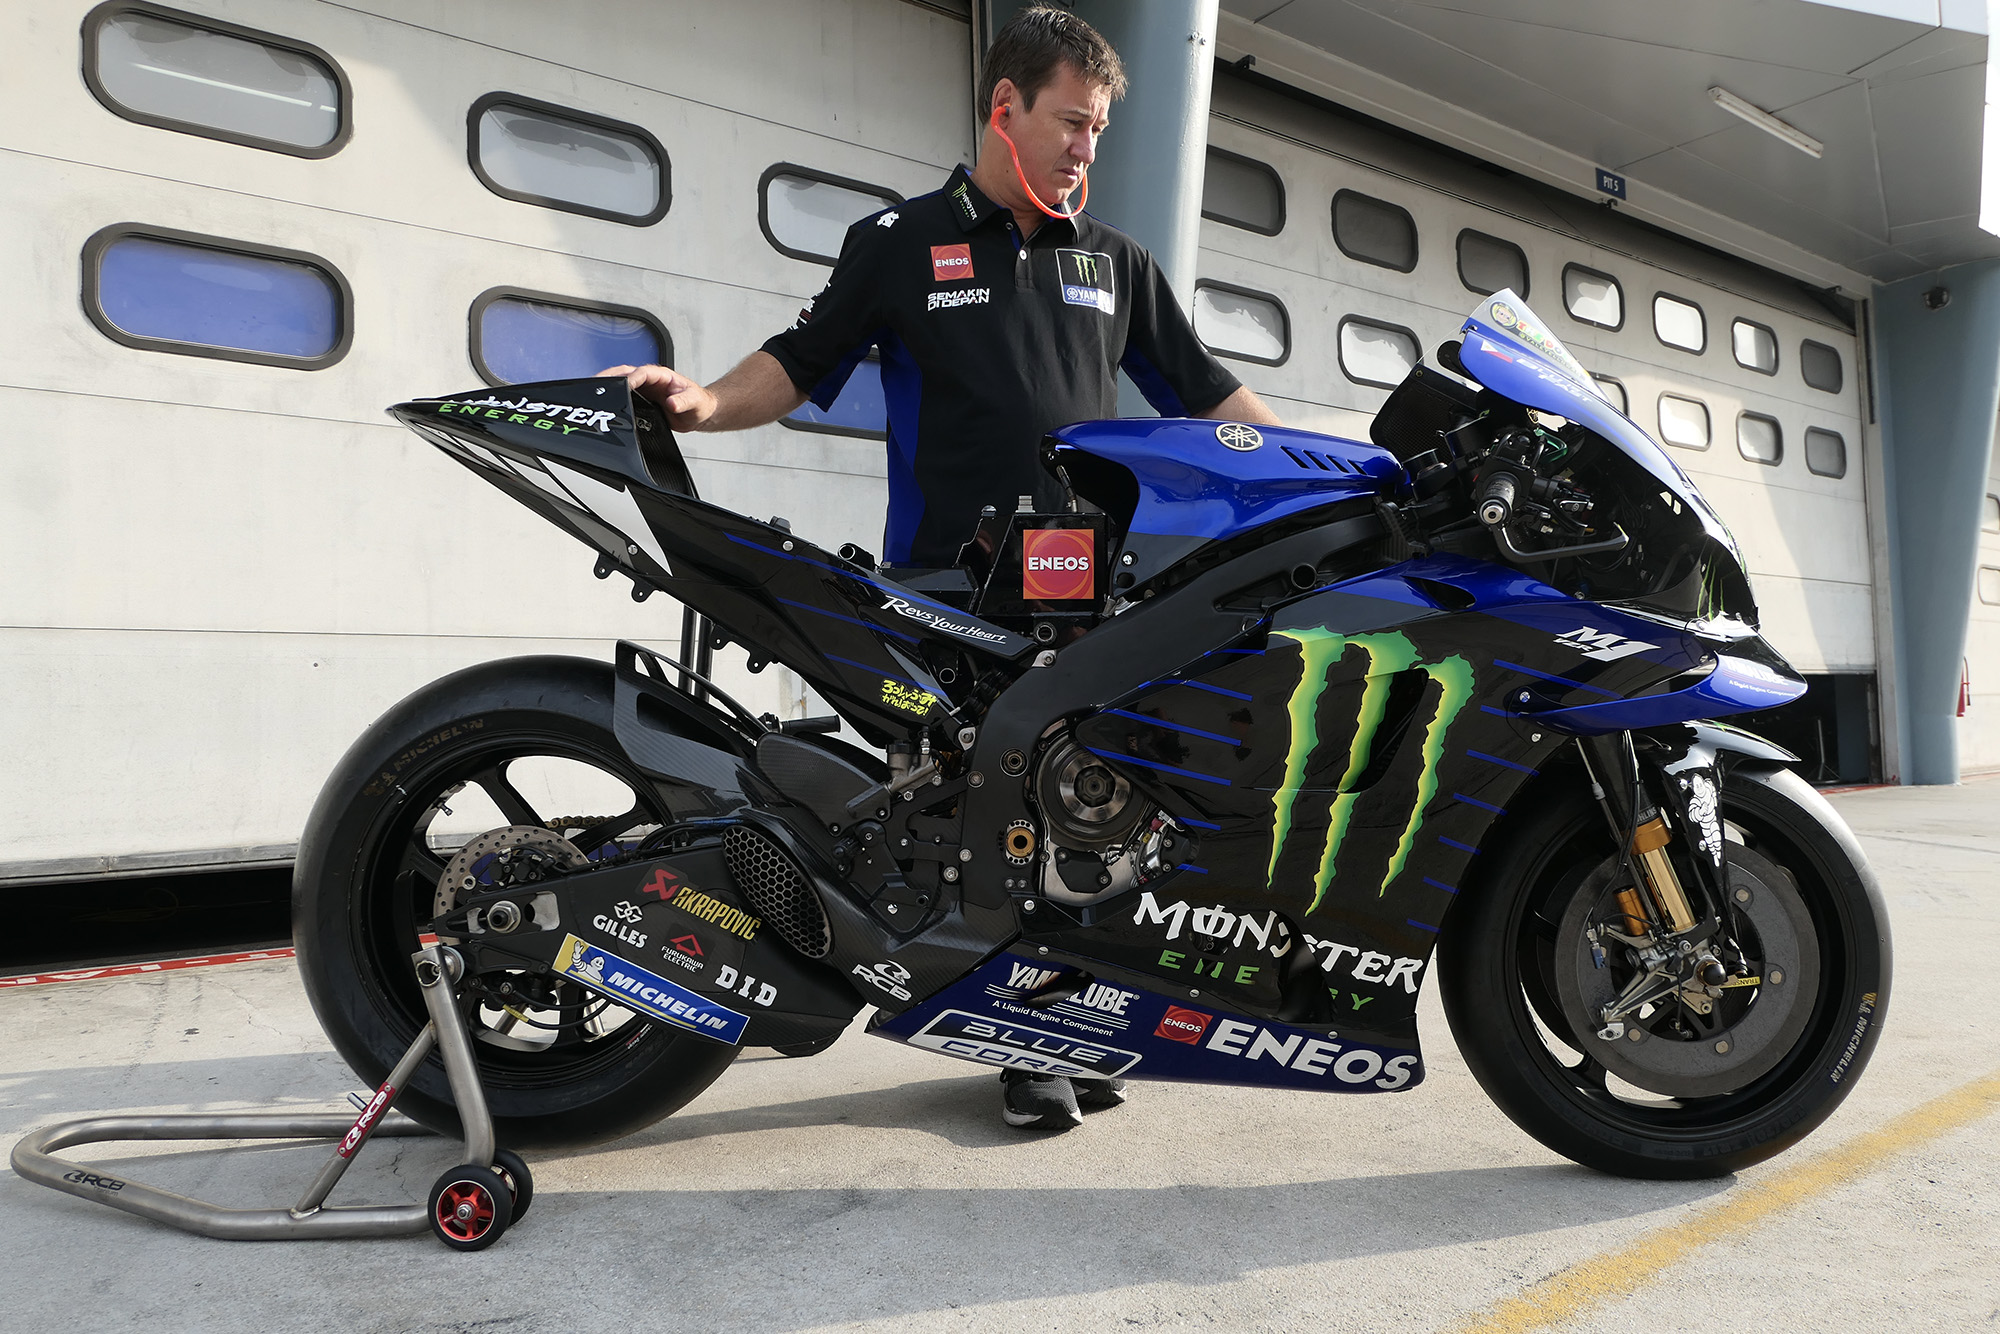 Side view of Valentino Rossi's Yamaha in 2020 Sepang MotoGP testing